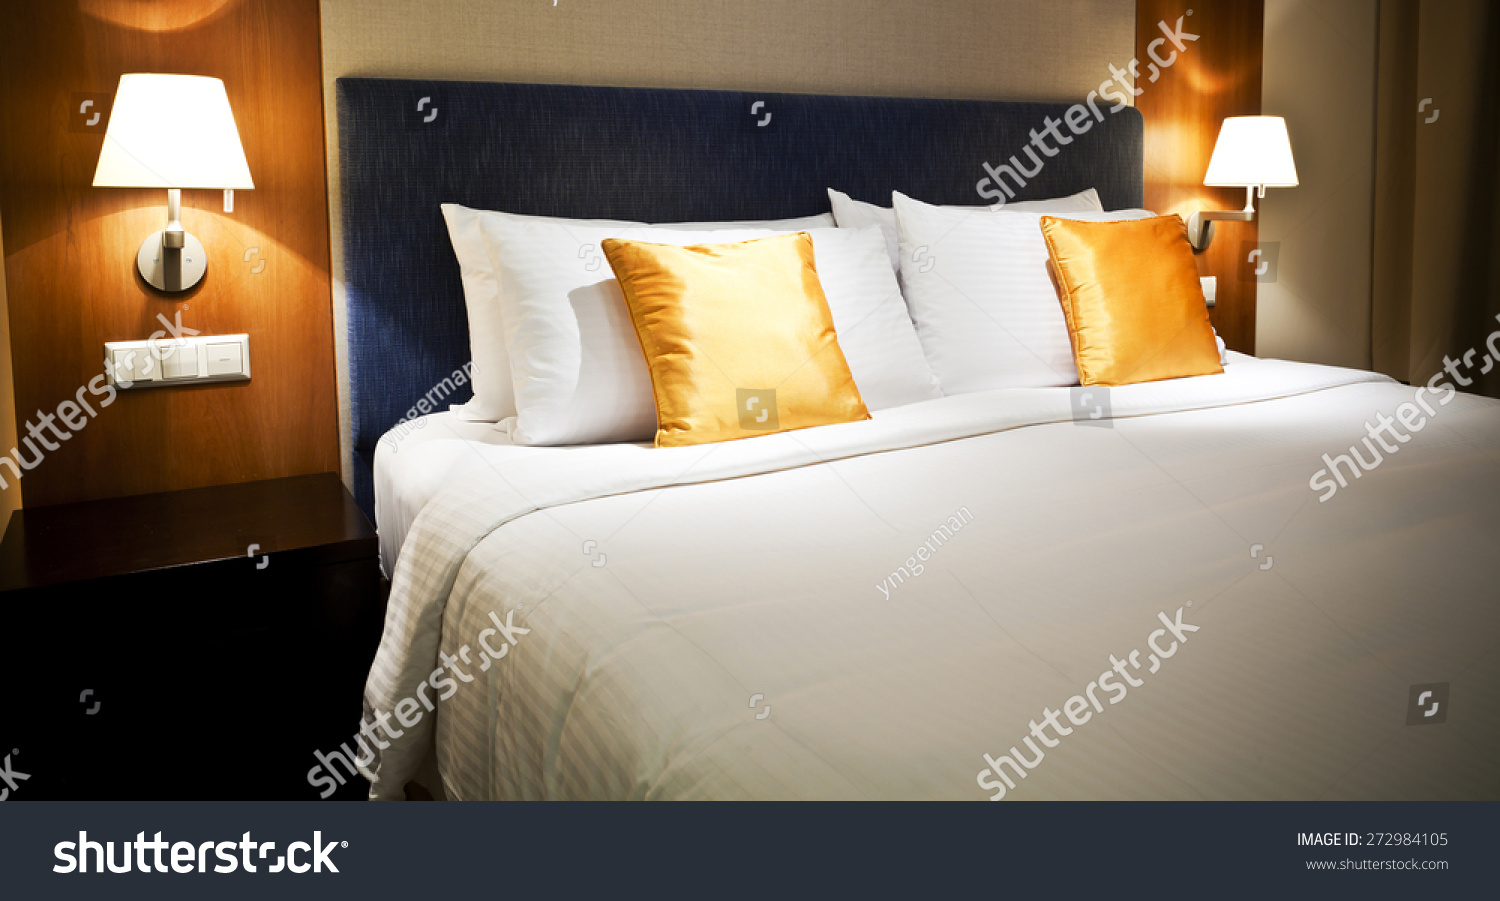 View Modern Luxury Hotel Room Stock Photo (Edit Now) 272984105 ... c24678d22